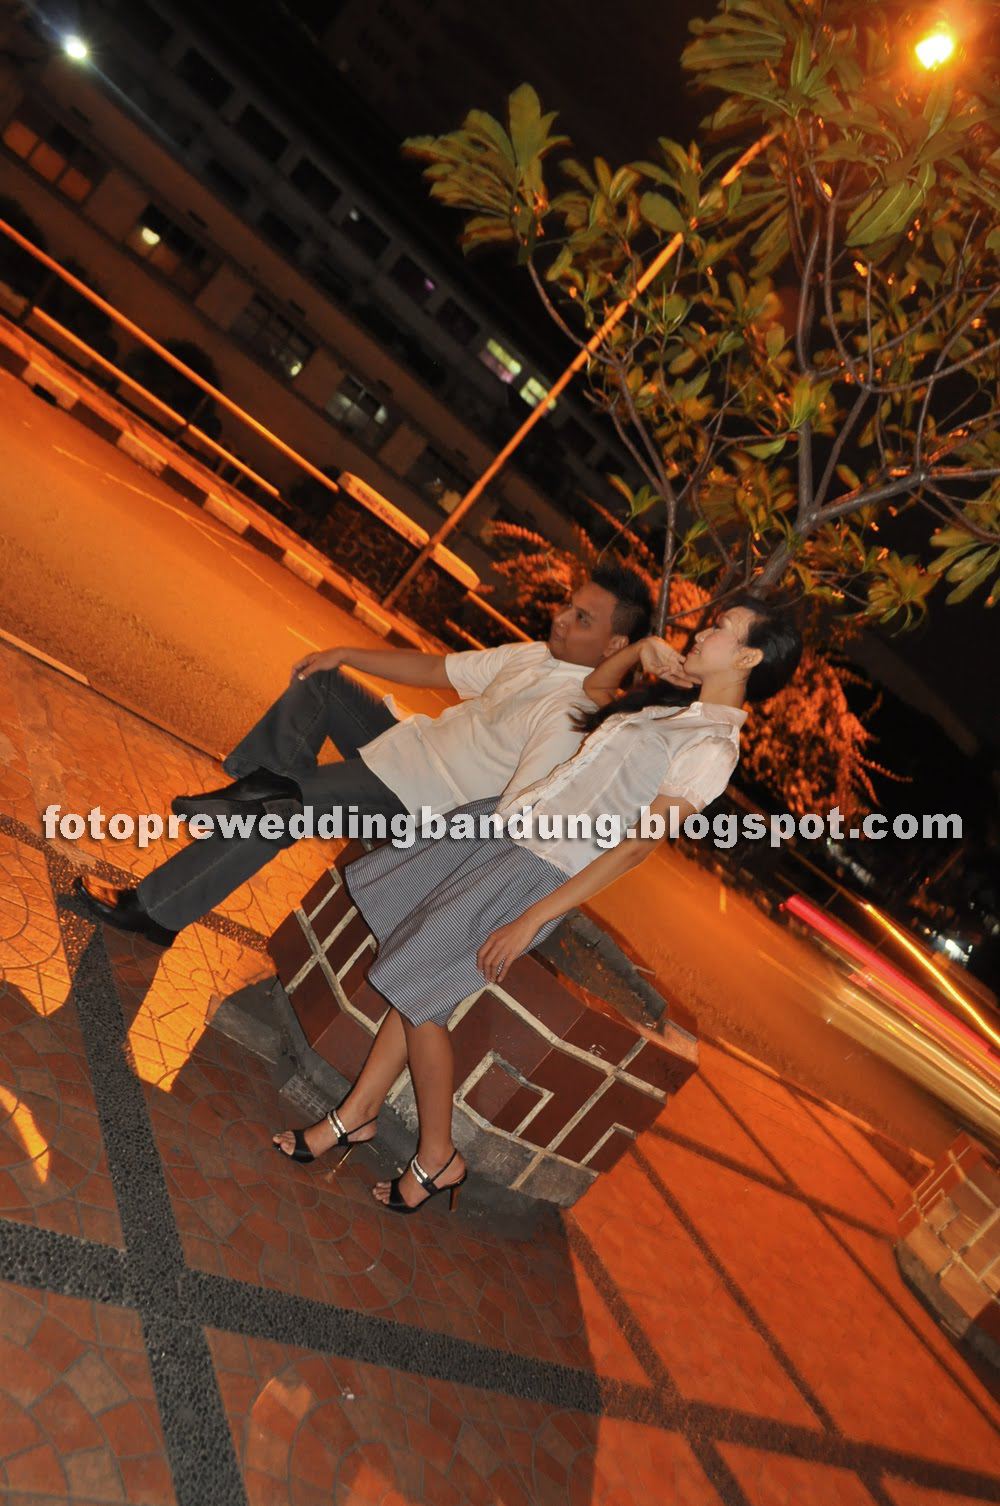 Foto Prewedding Bali Jakarta Background Pre Wedding